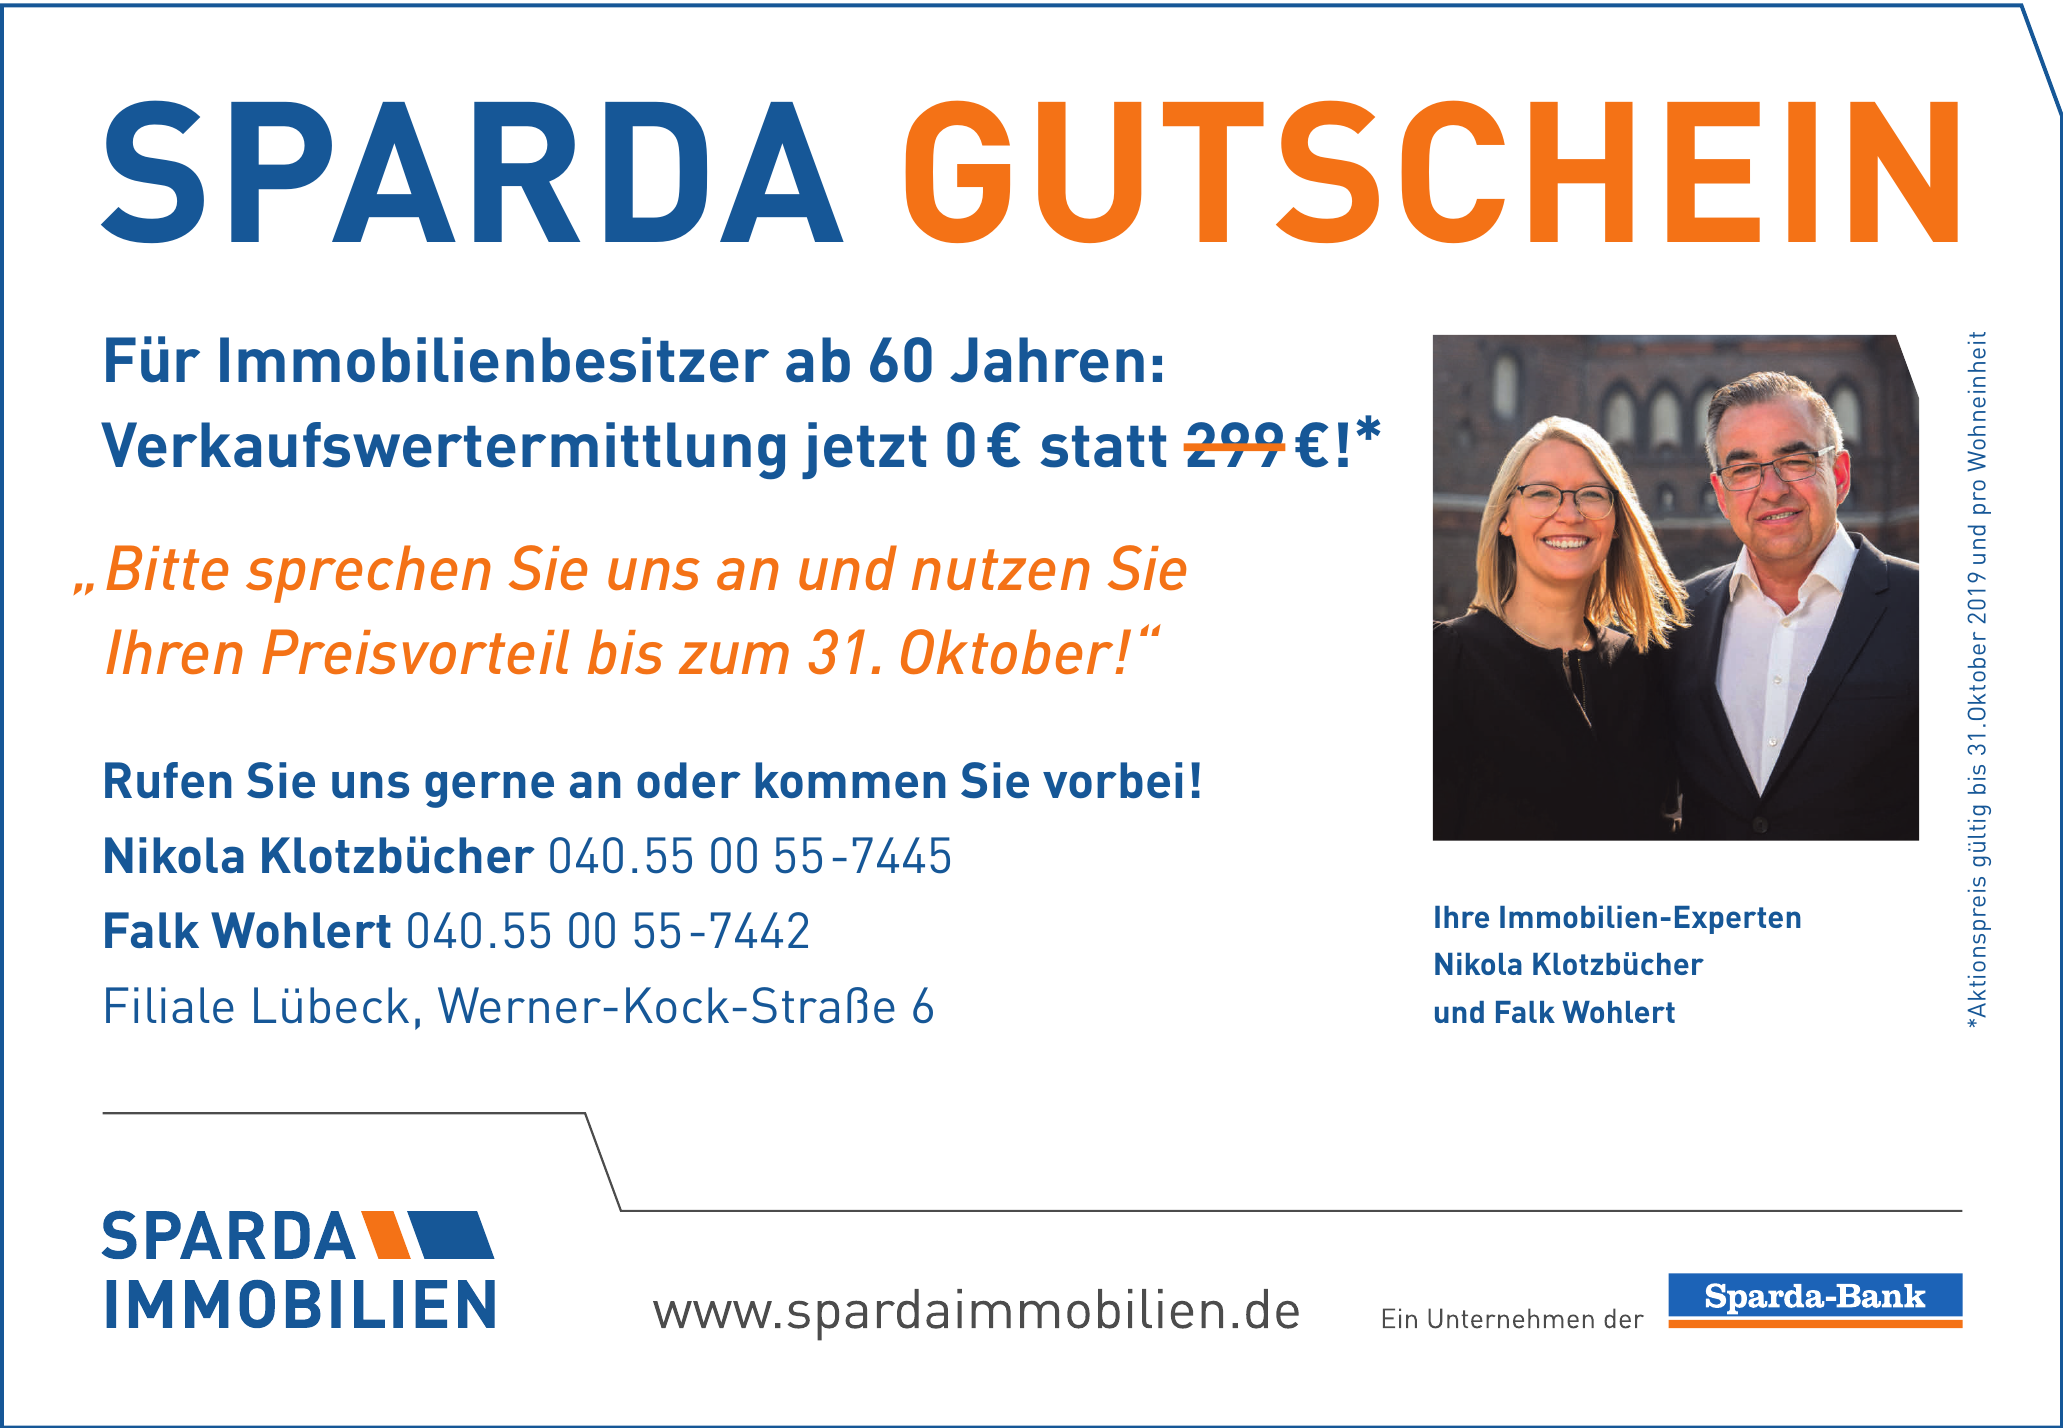 Sparda Immobilien GmbH